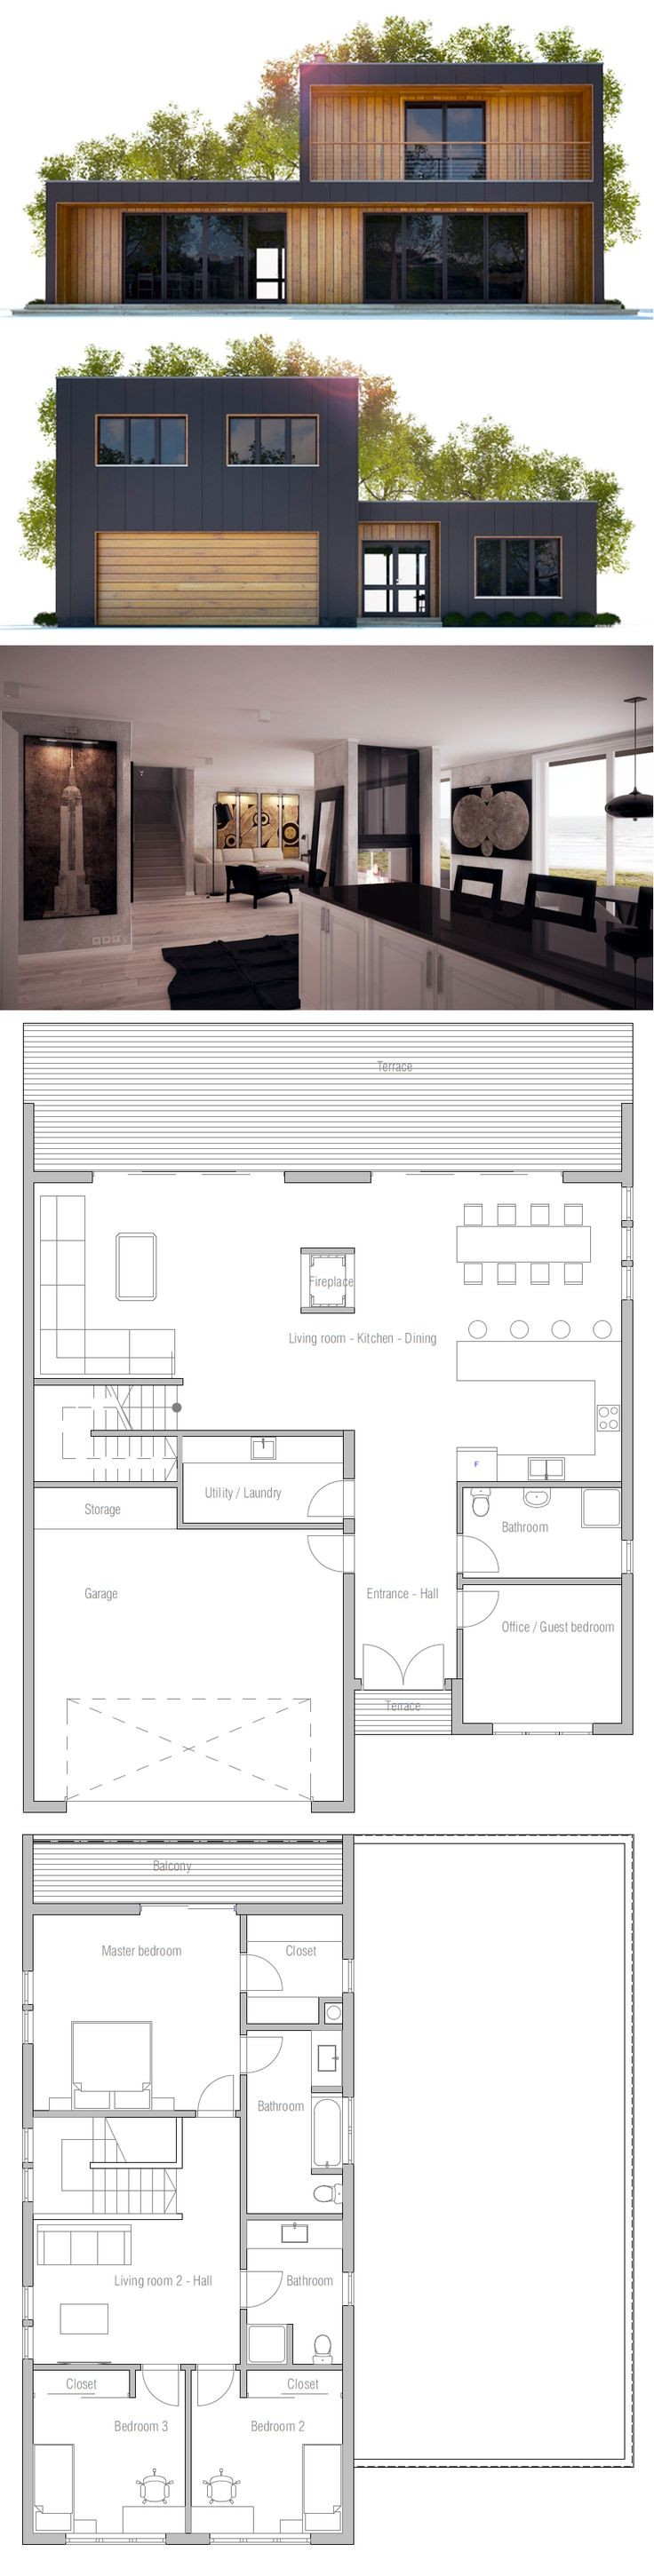 Floor Plans For Homes